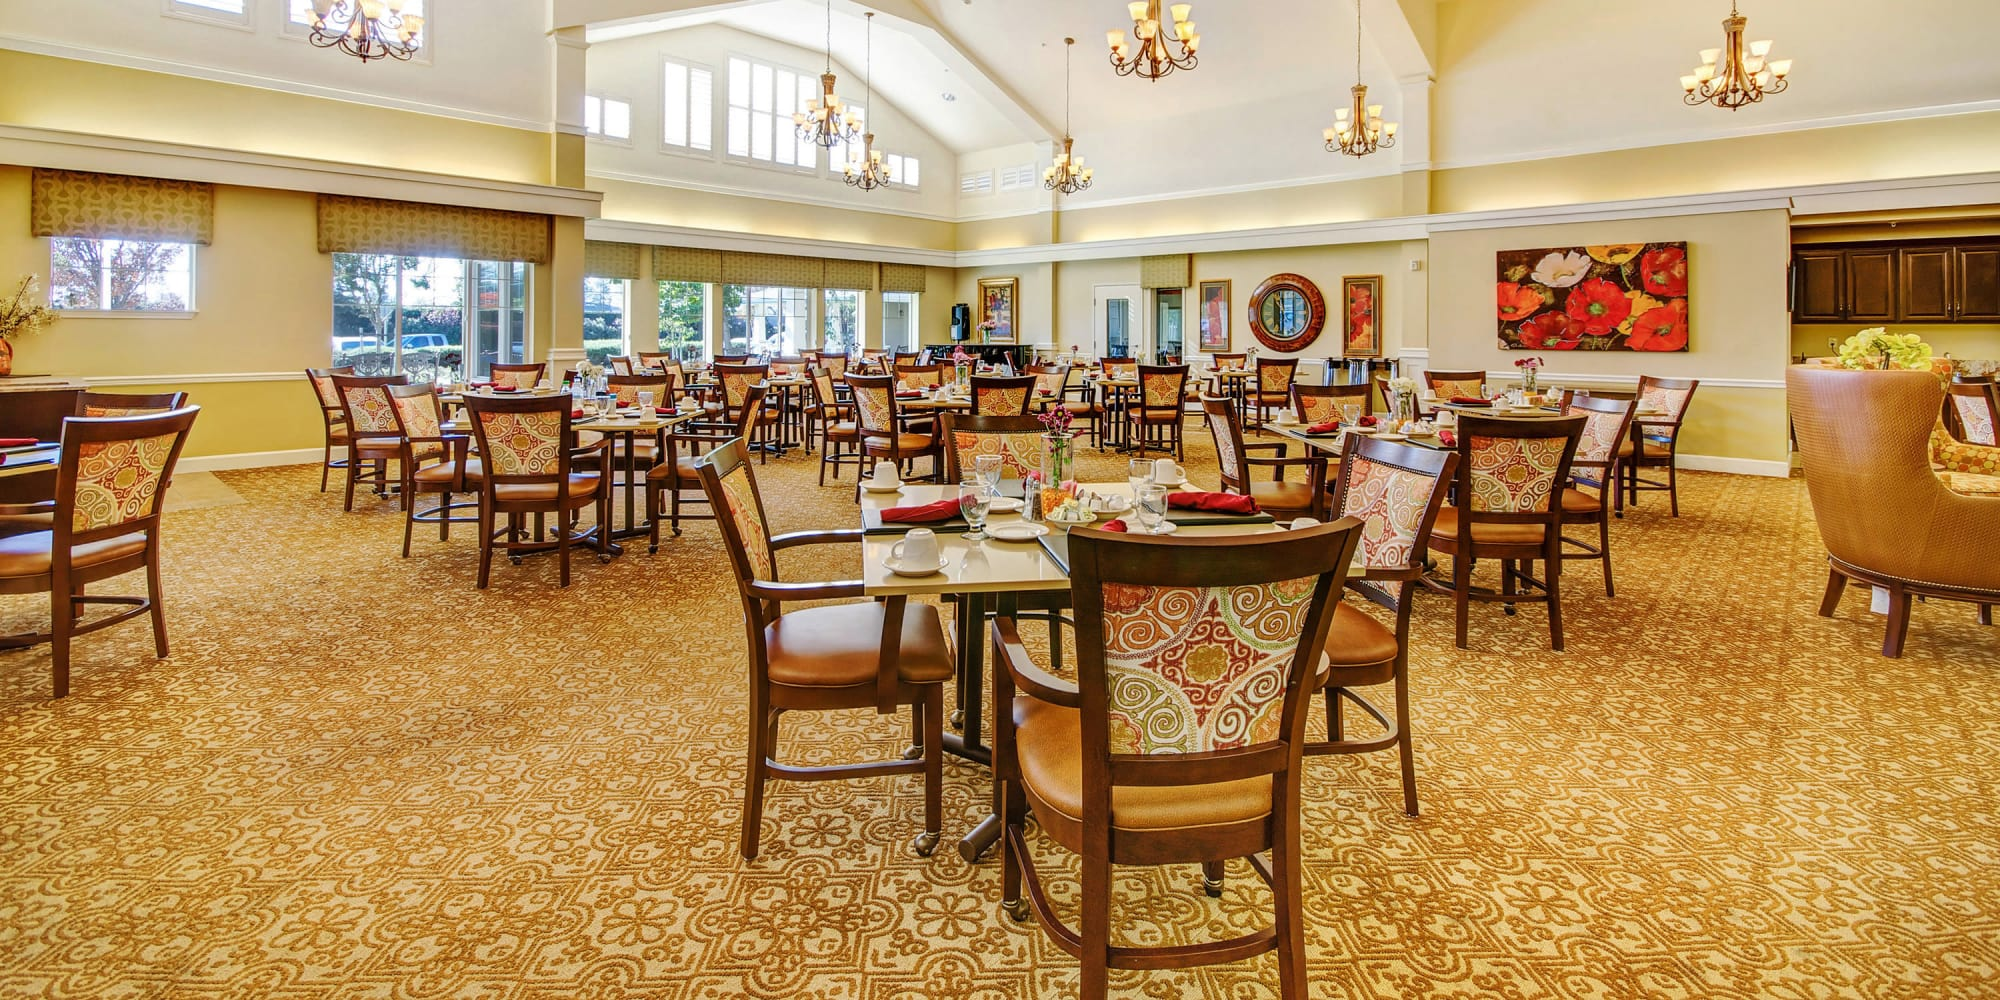 Dining aera at The Commons at Union Ranch in Manteca, California